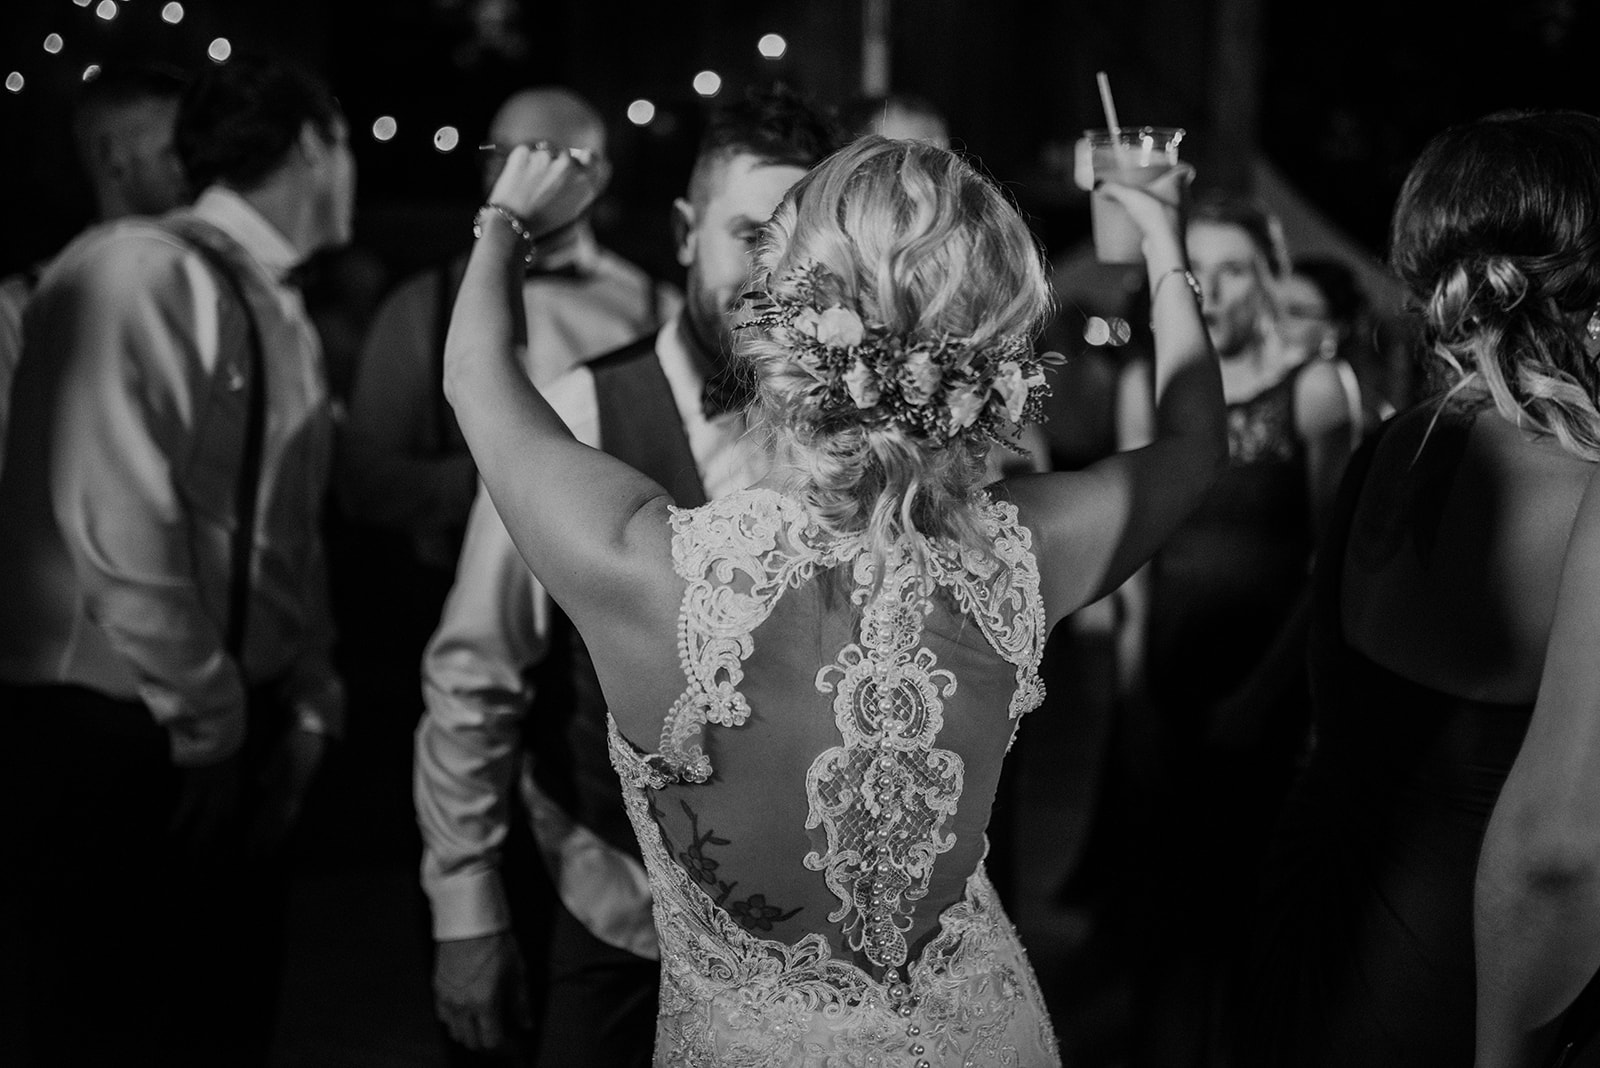 overthevineswisconsinwedding_1357.jpg